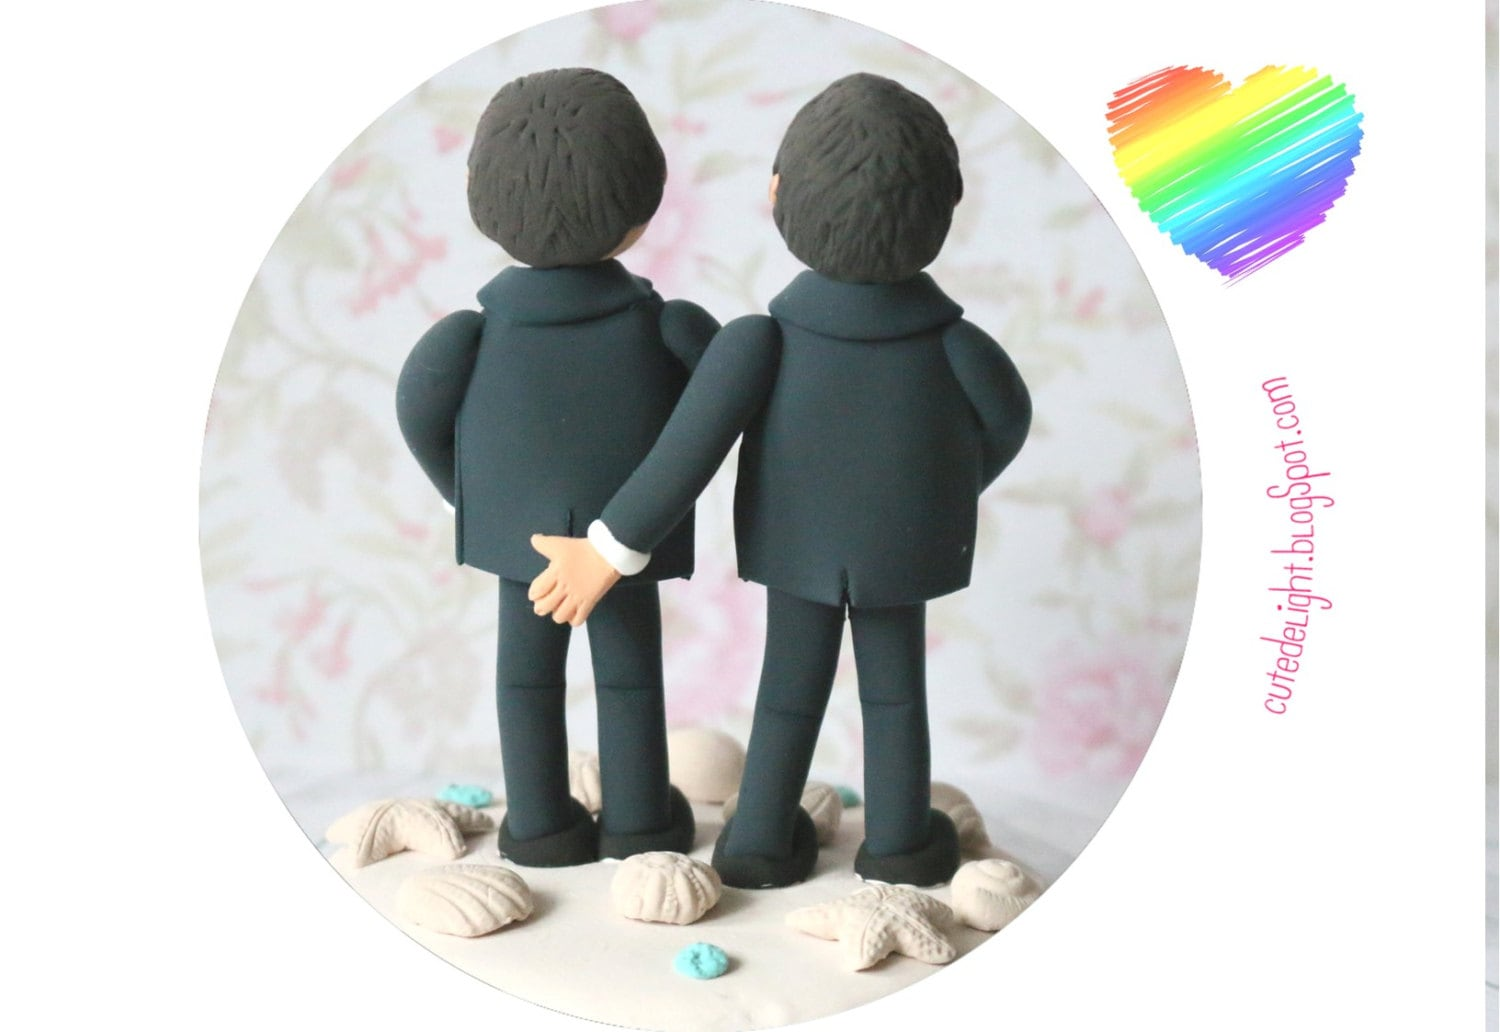 Personalized Same Sex Gay Wedding Cake Topper Acrylic Cake Silhouette Decoration For Sale Online